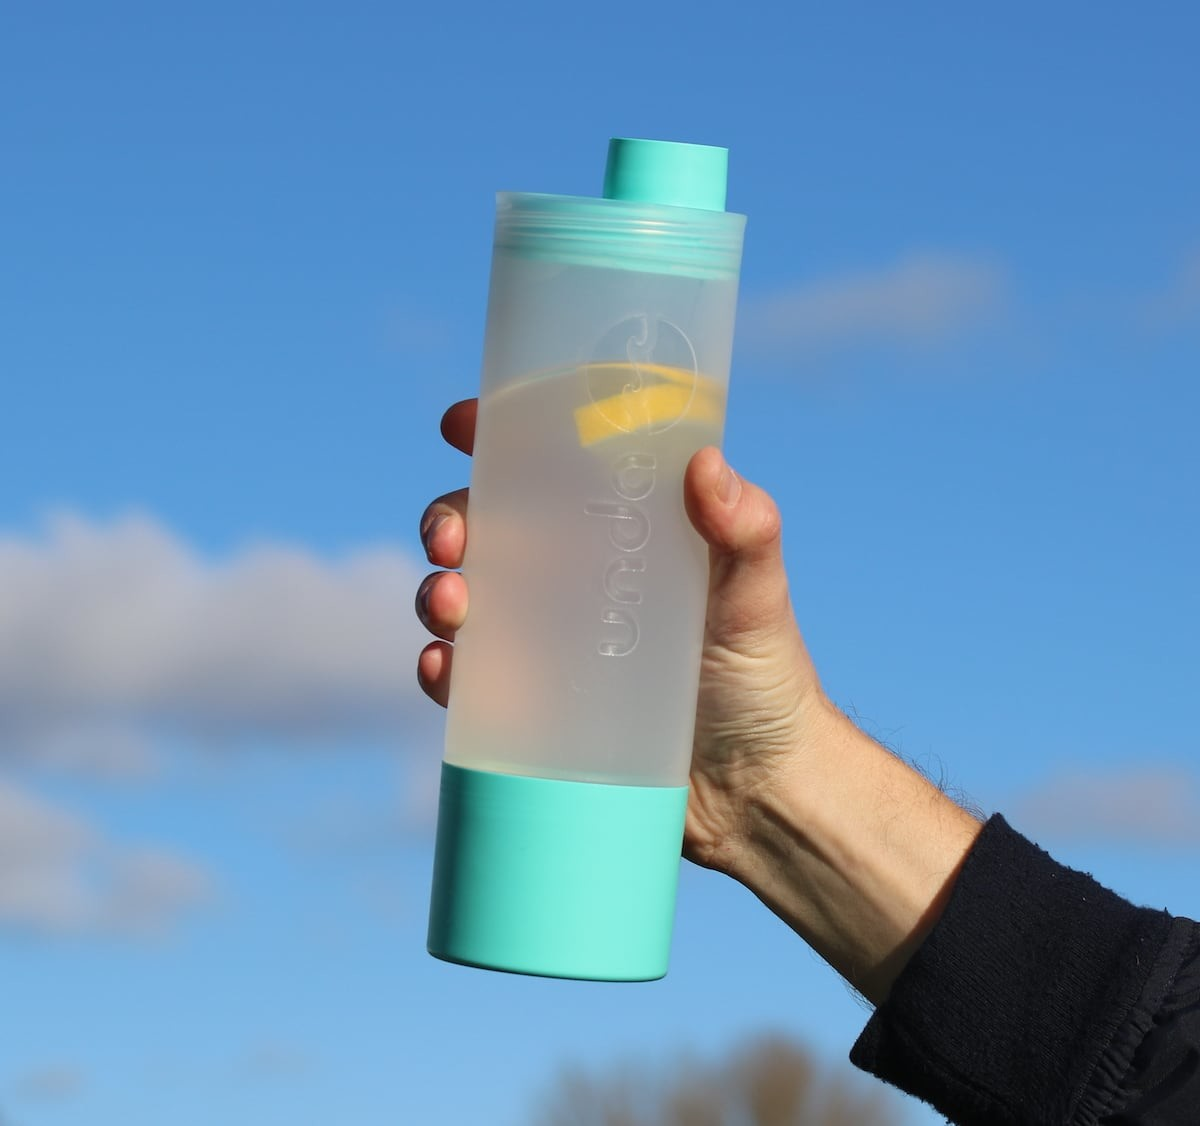 unda 3-in-1 Bottle gives you a large cup and storage compartment